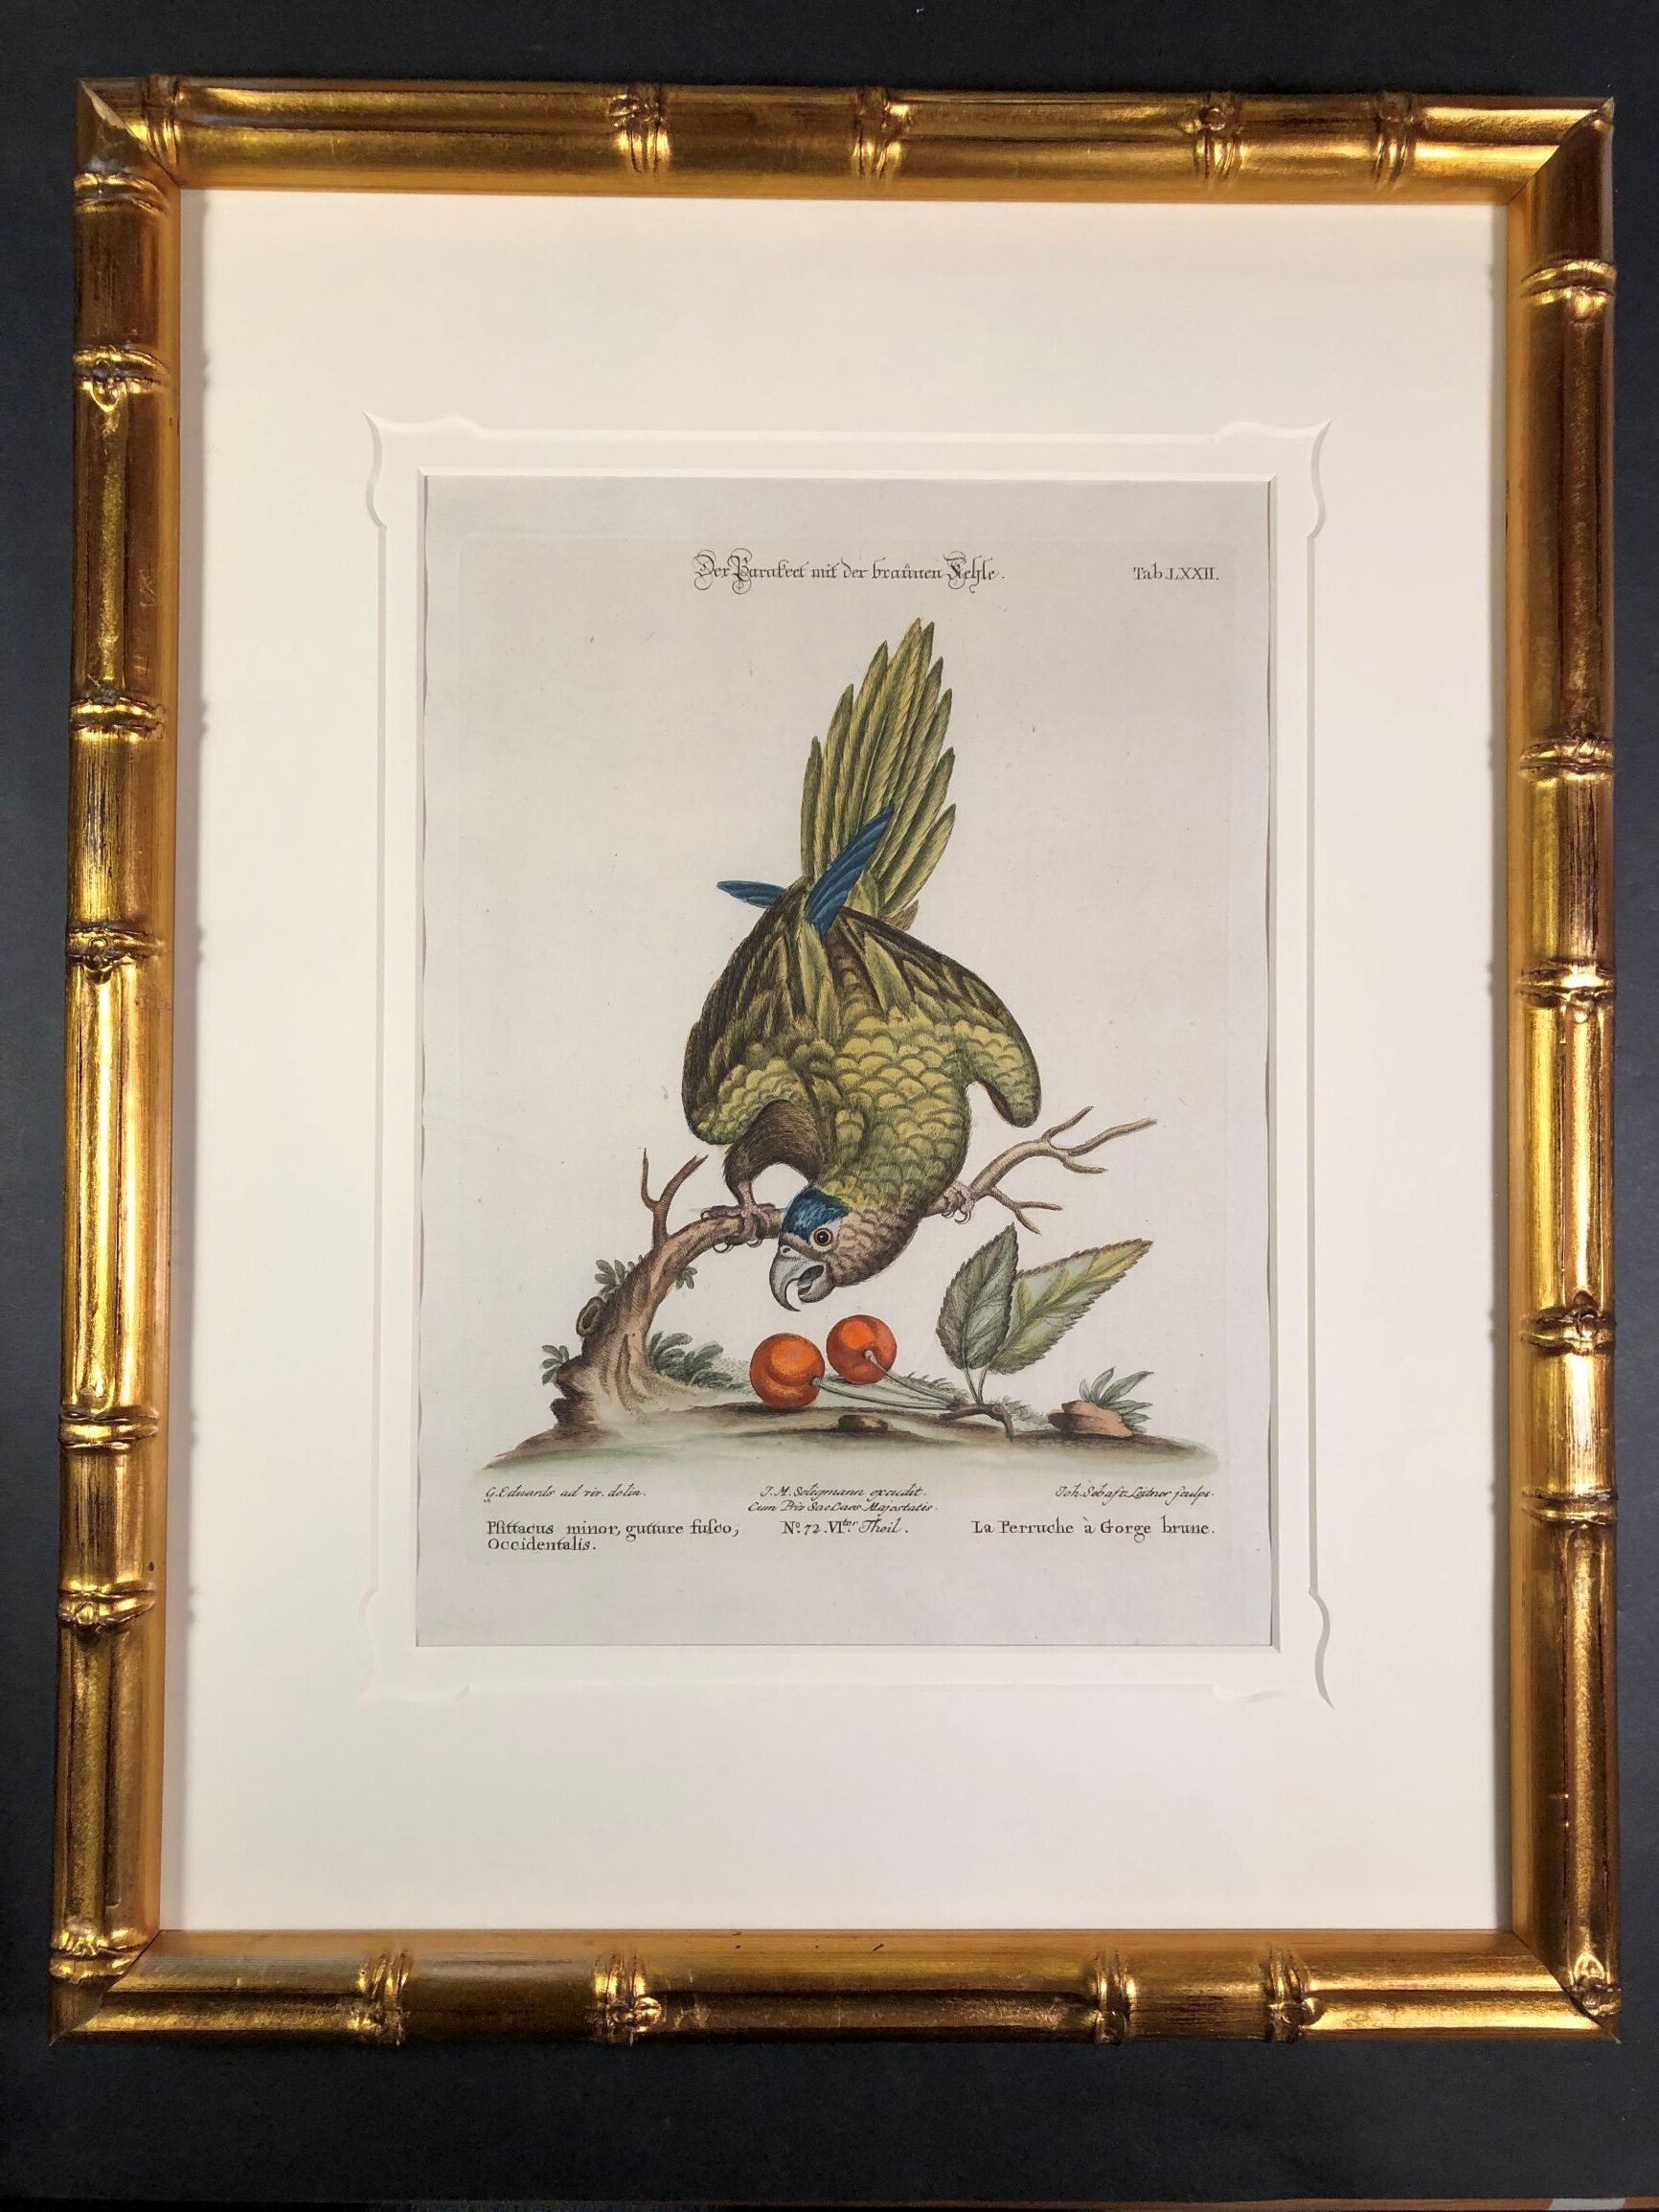 Framed decorative antique prints of Perruches or Psittacus from the 18th century.